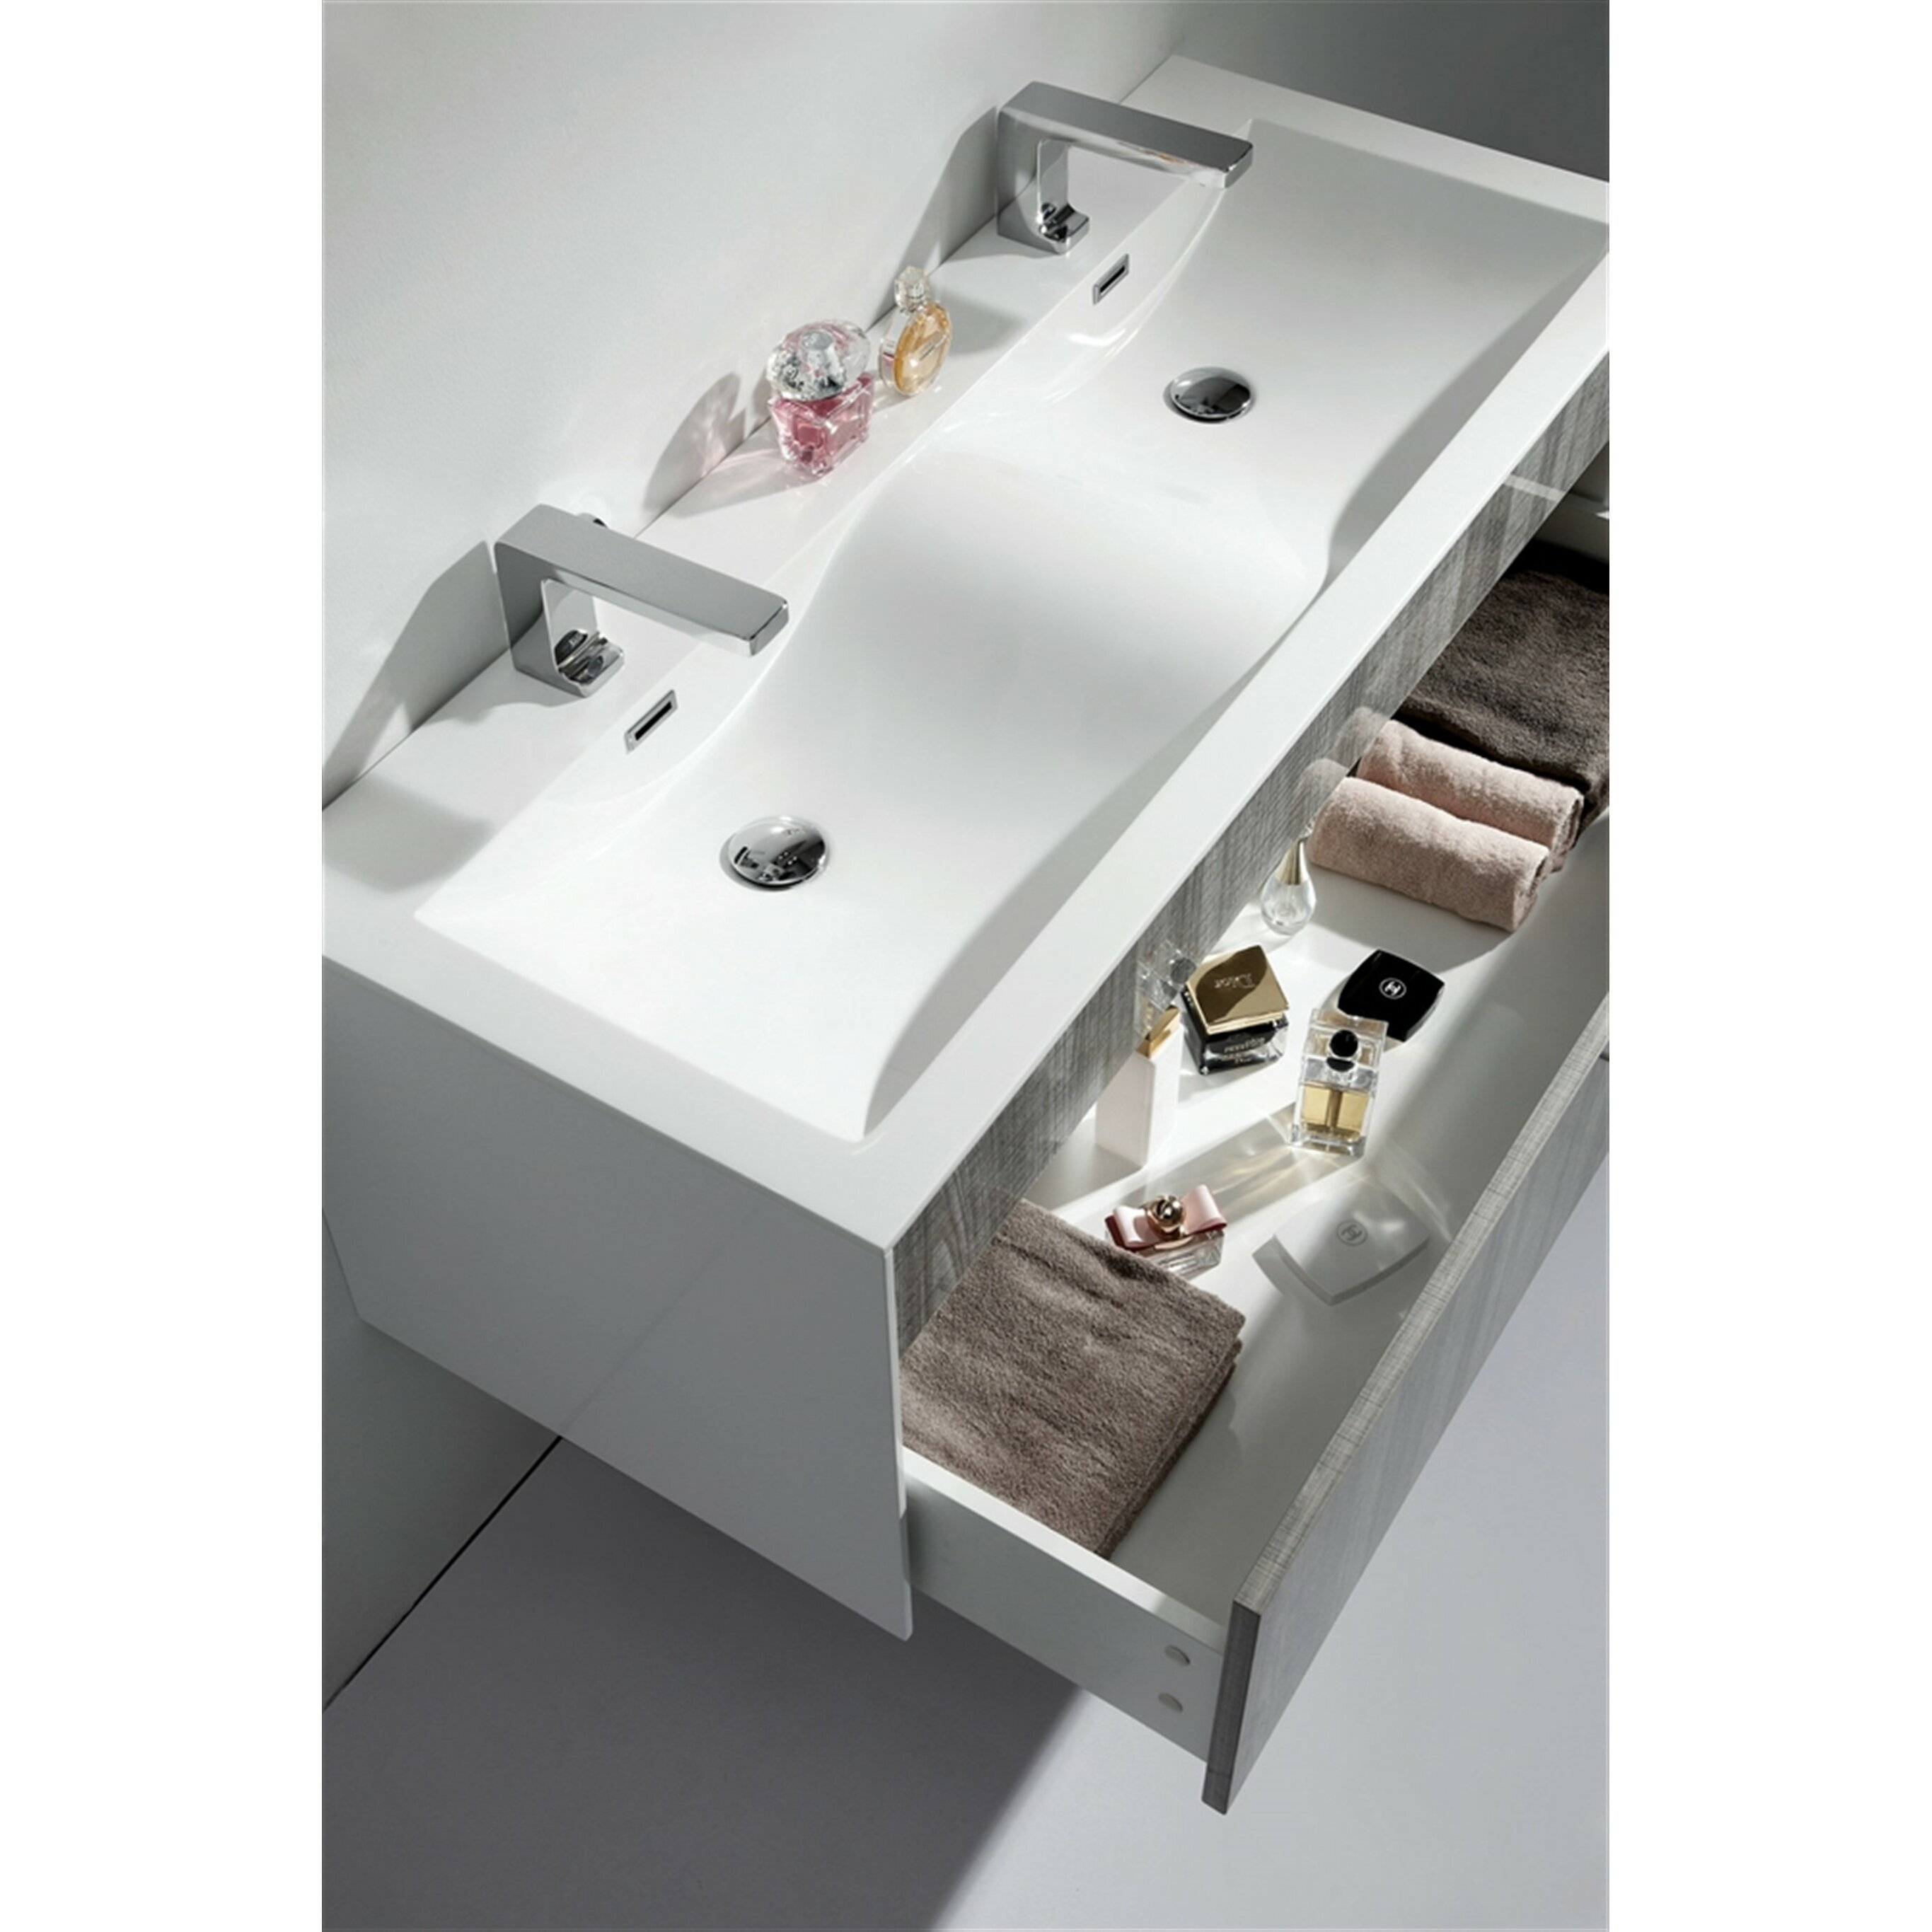 Kube bath fitto 48 double sink modern bathroom vanity set - Contemporary double sink bathroom vanity ...